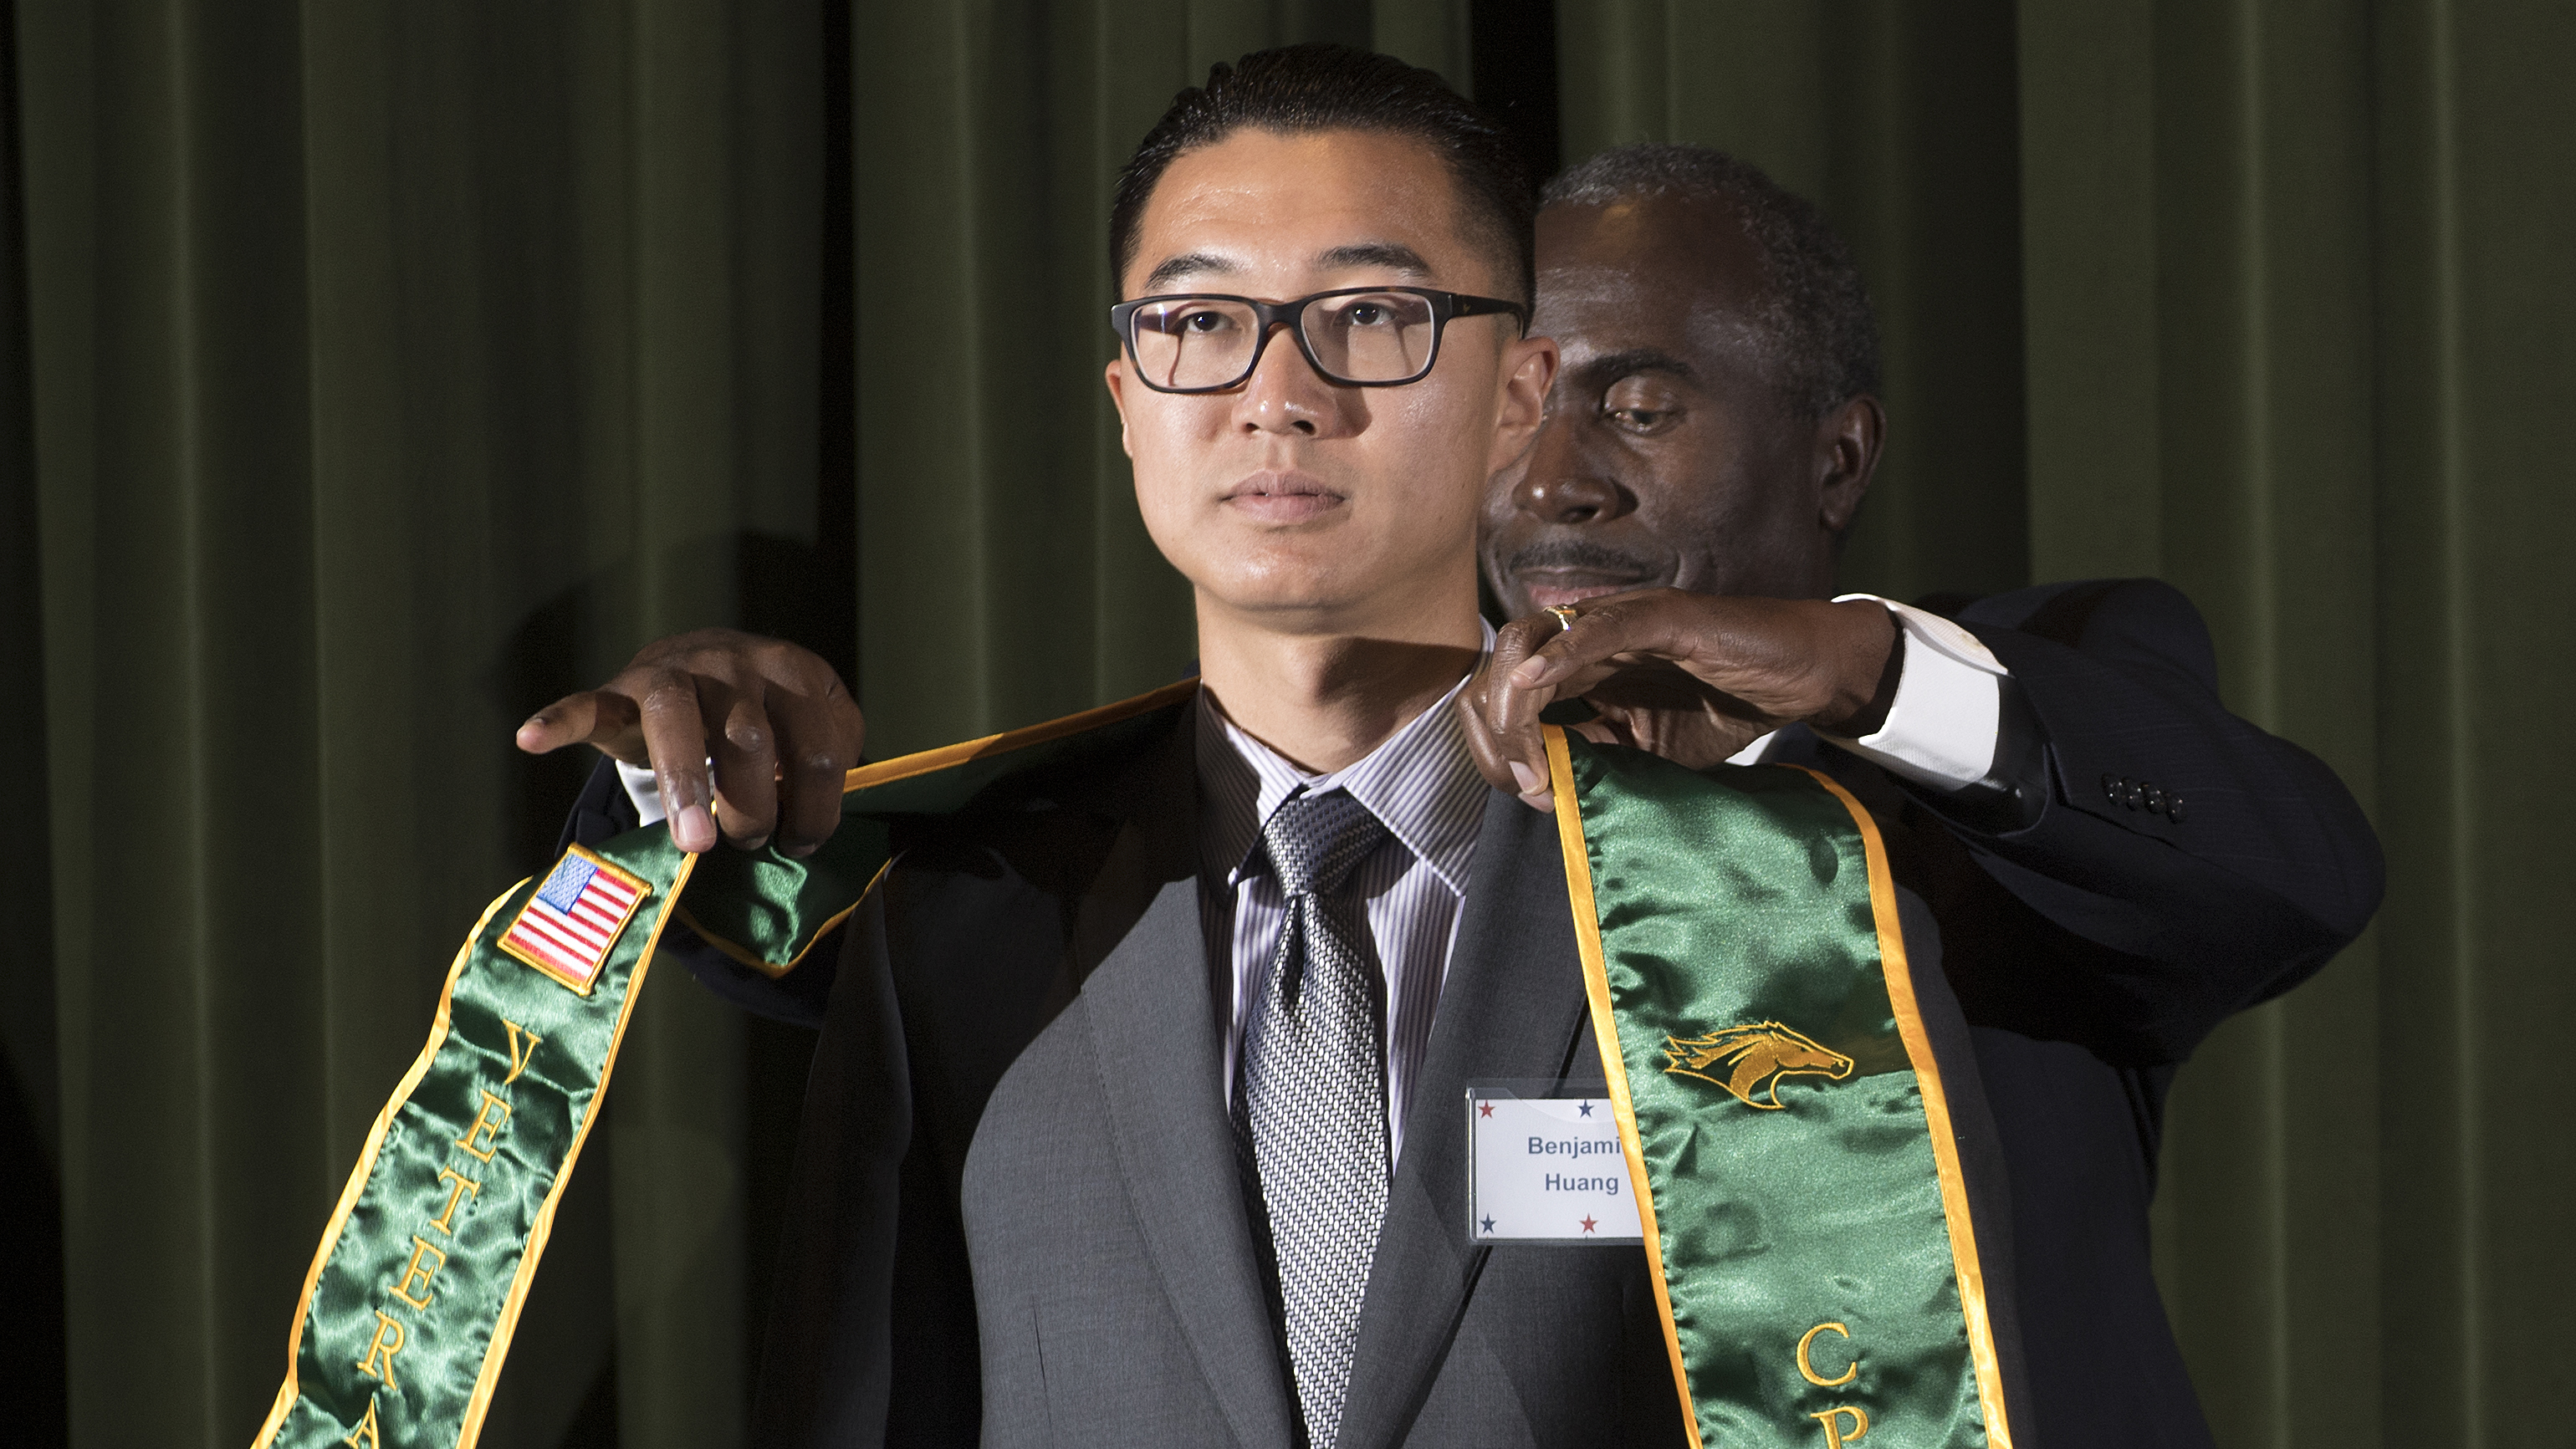 Cal Poly Pomona is the CSU leader in converting military training and experience into transferable college credit, which helps lead to graduation.